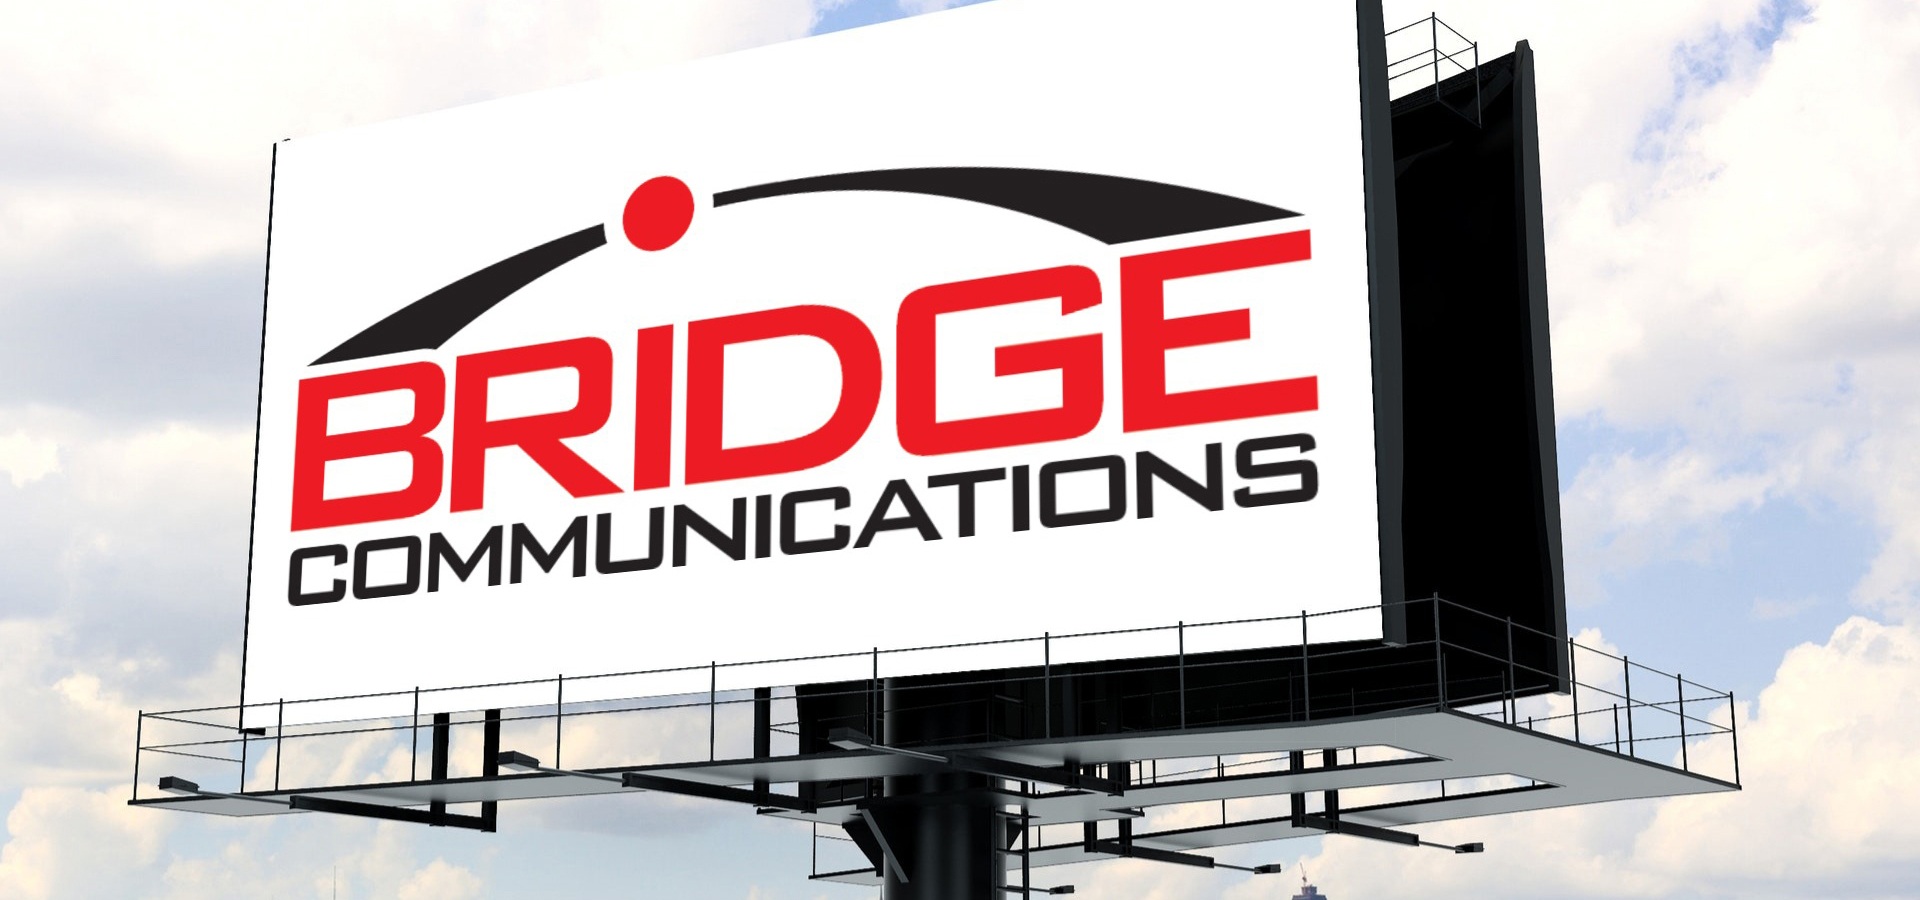 Bridge Communications